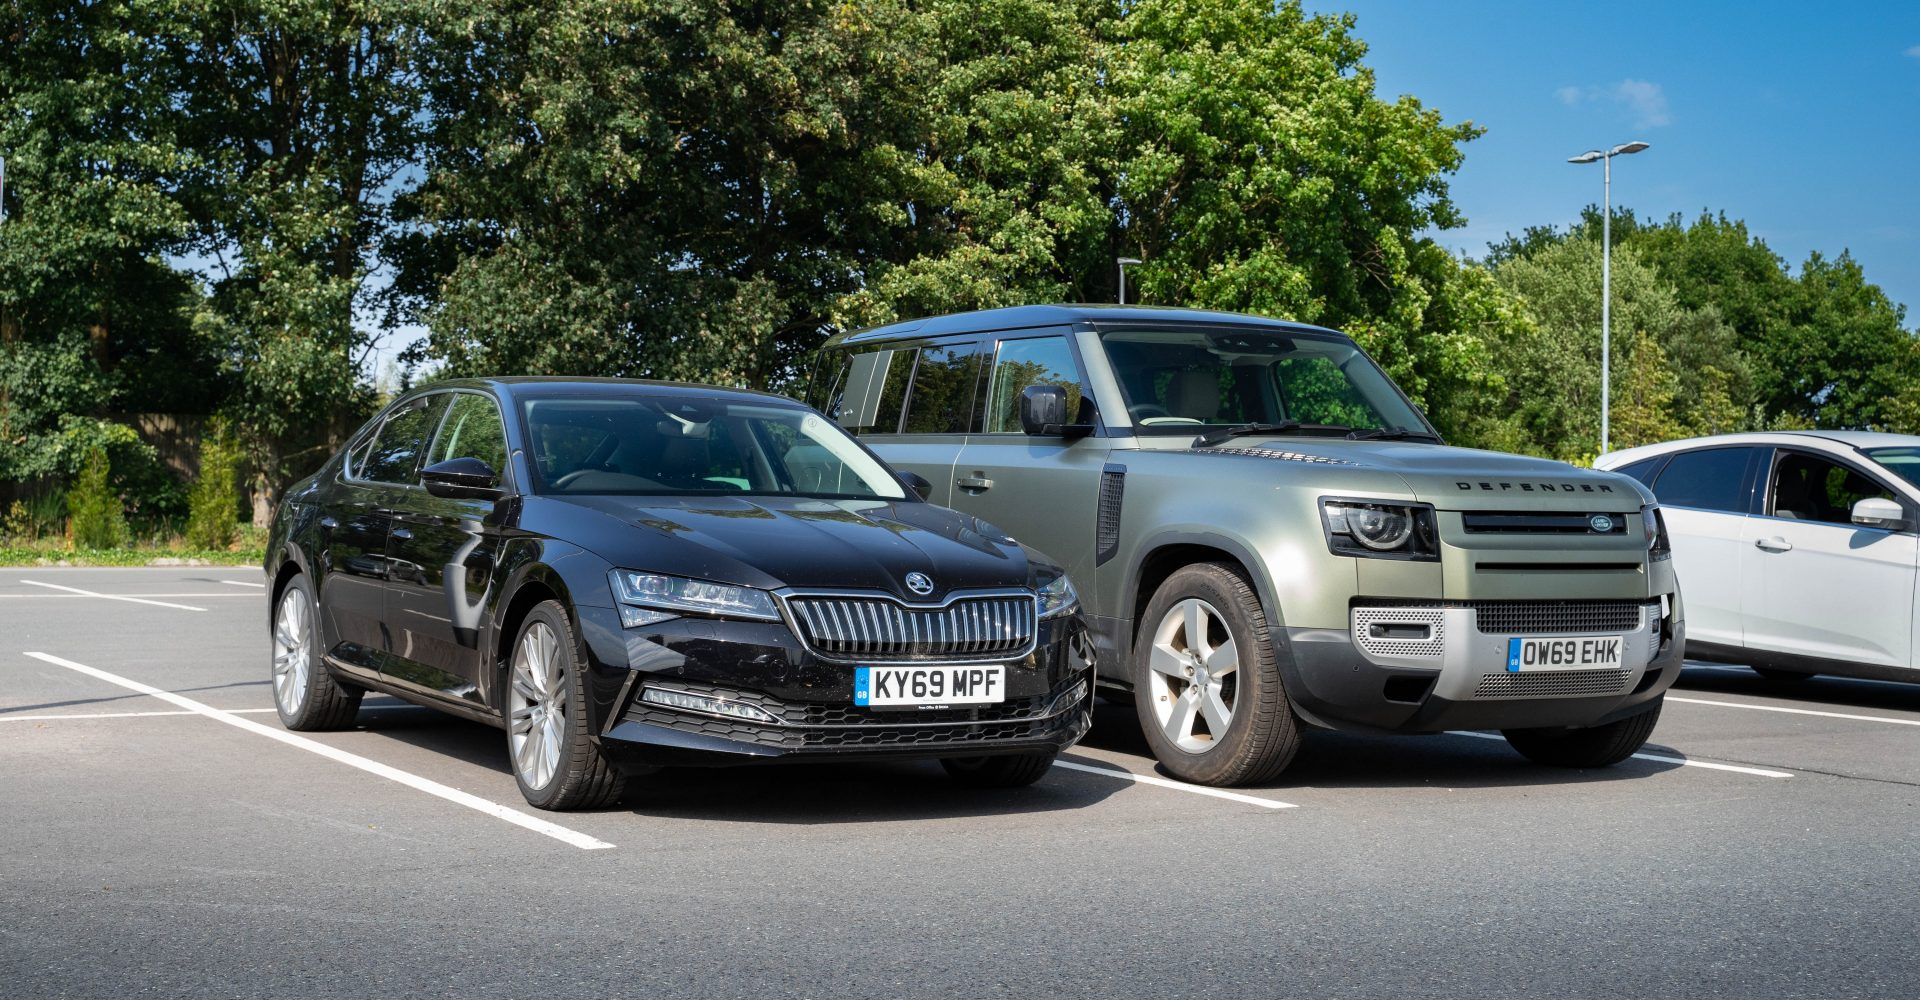 Long-term report: 'Our' Skoda Superb is becoming a family favourite